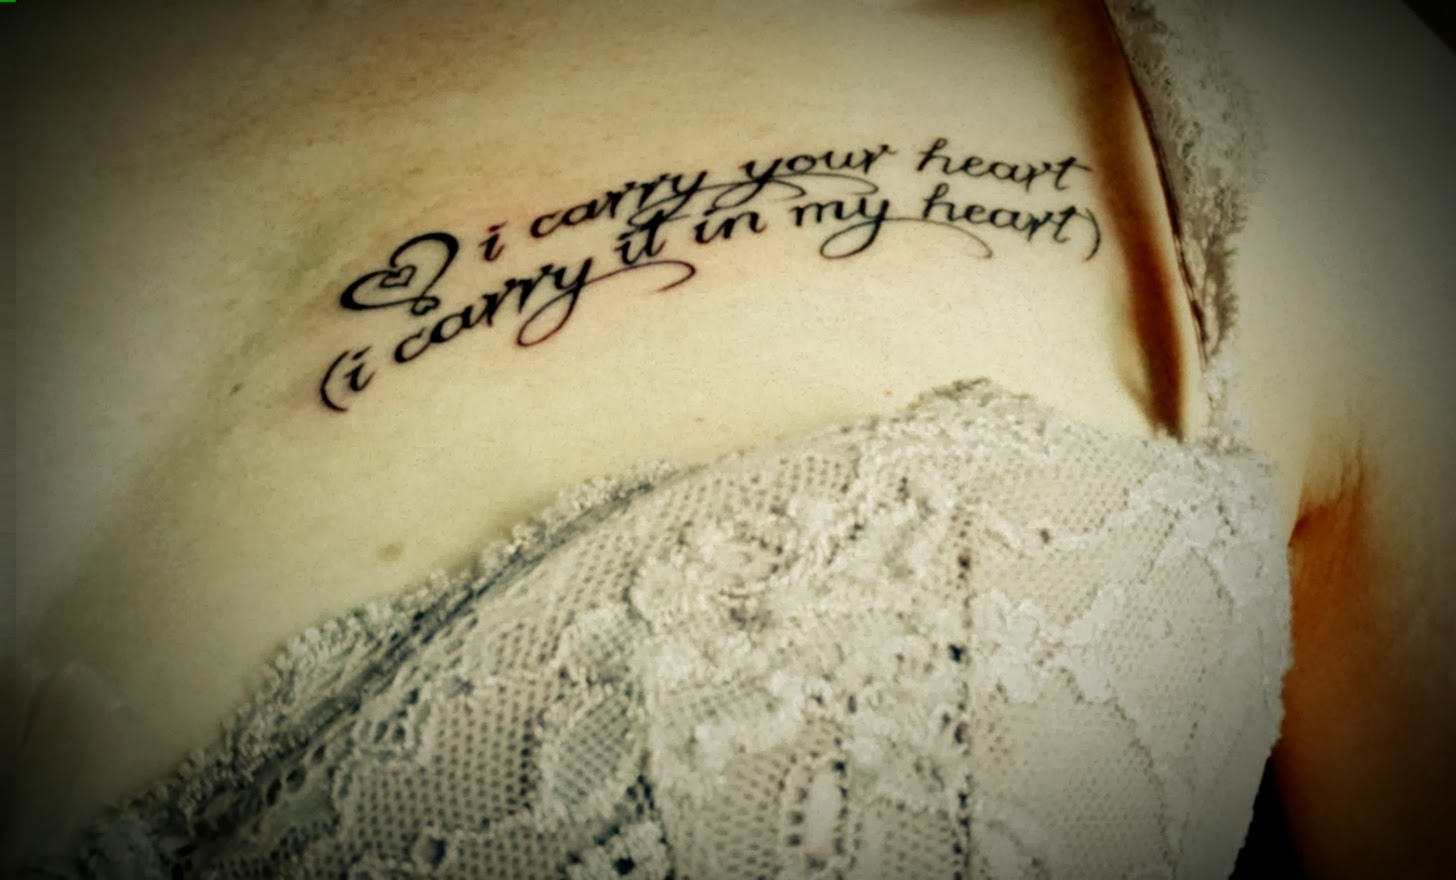 Tattoo - I carry your heaert (I carry it in my heart)